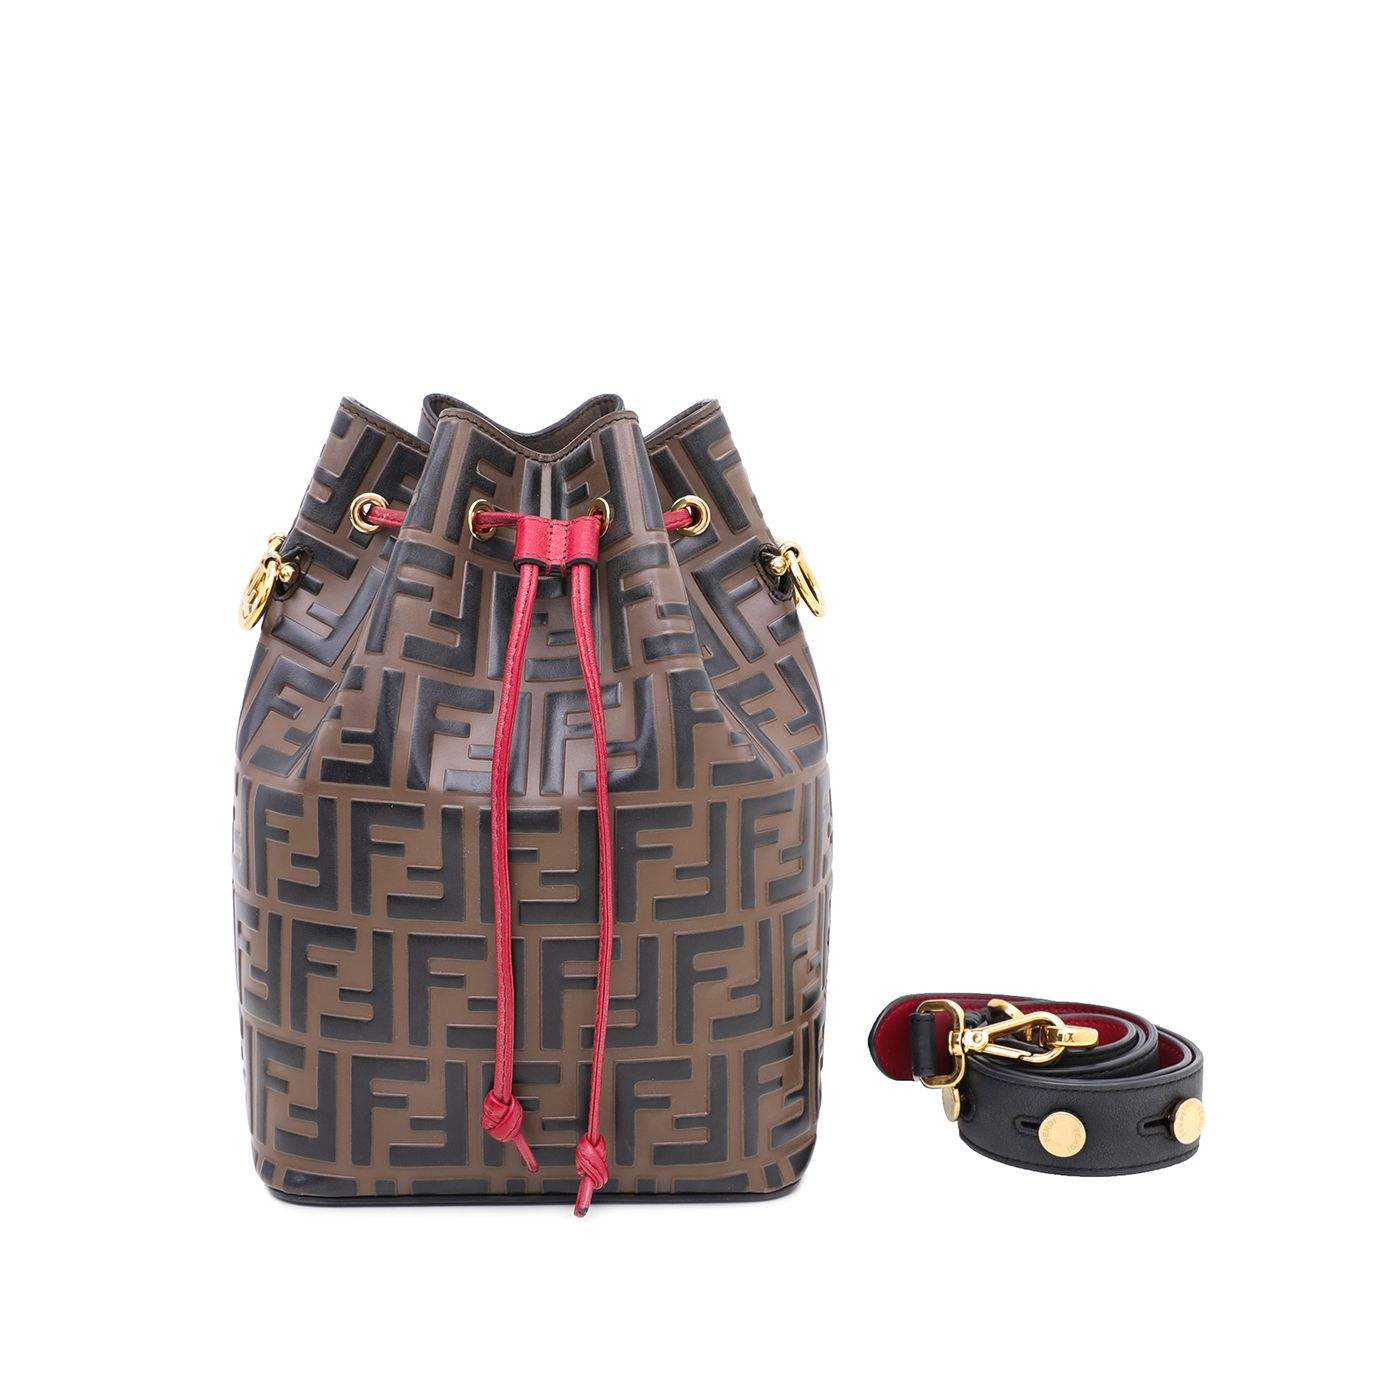 Fendi Bicolor Mon Tresor Bucket Bag